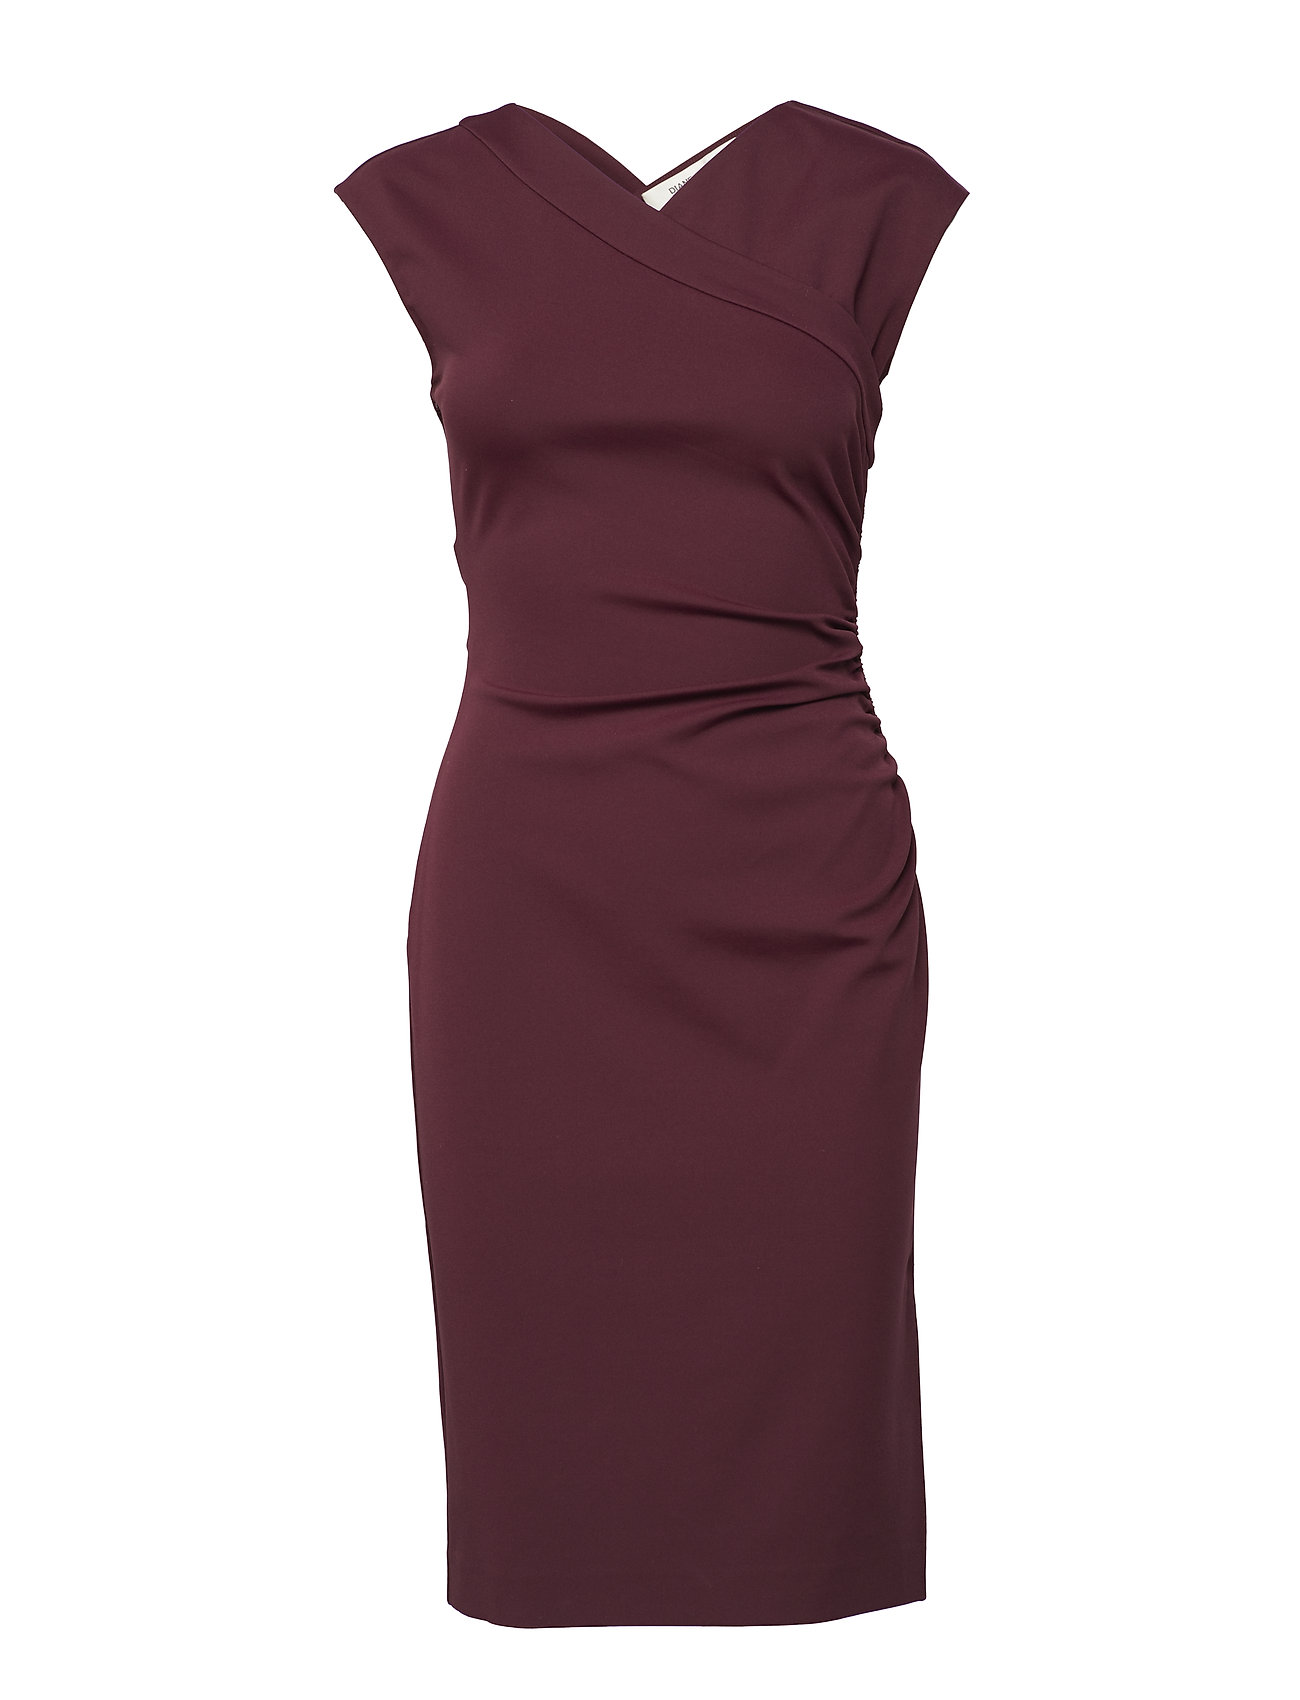 Image of Cap Slv Ruched Jersey Dress (3071142647)